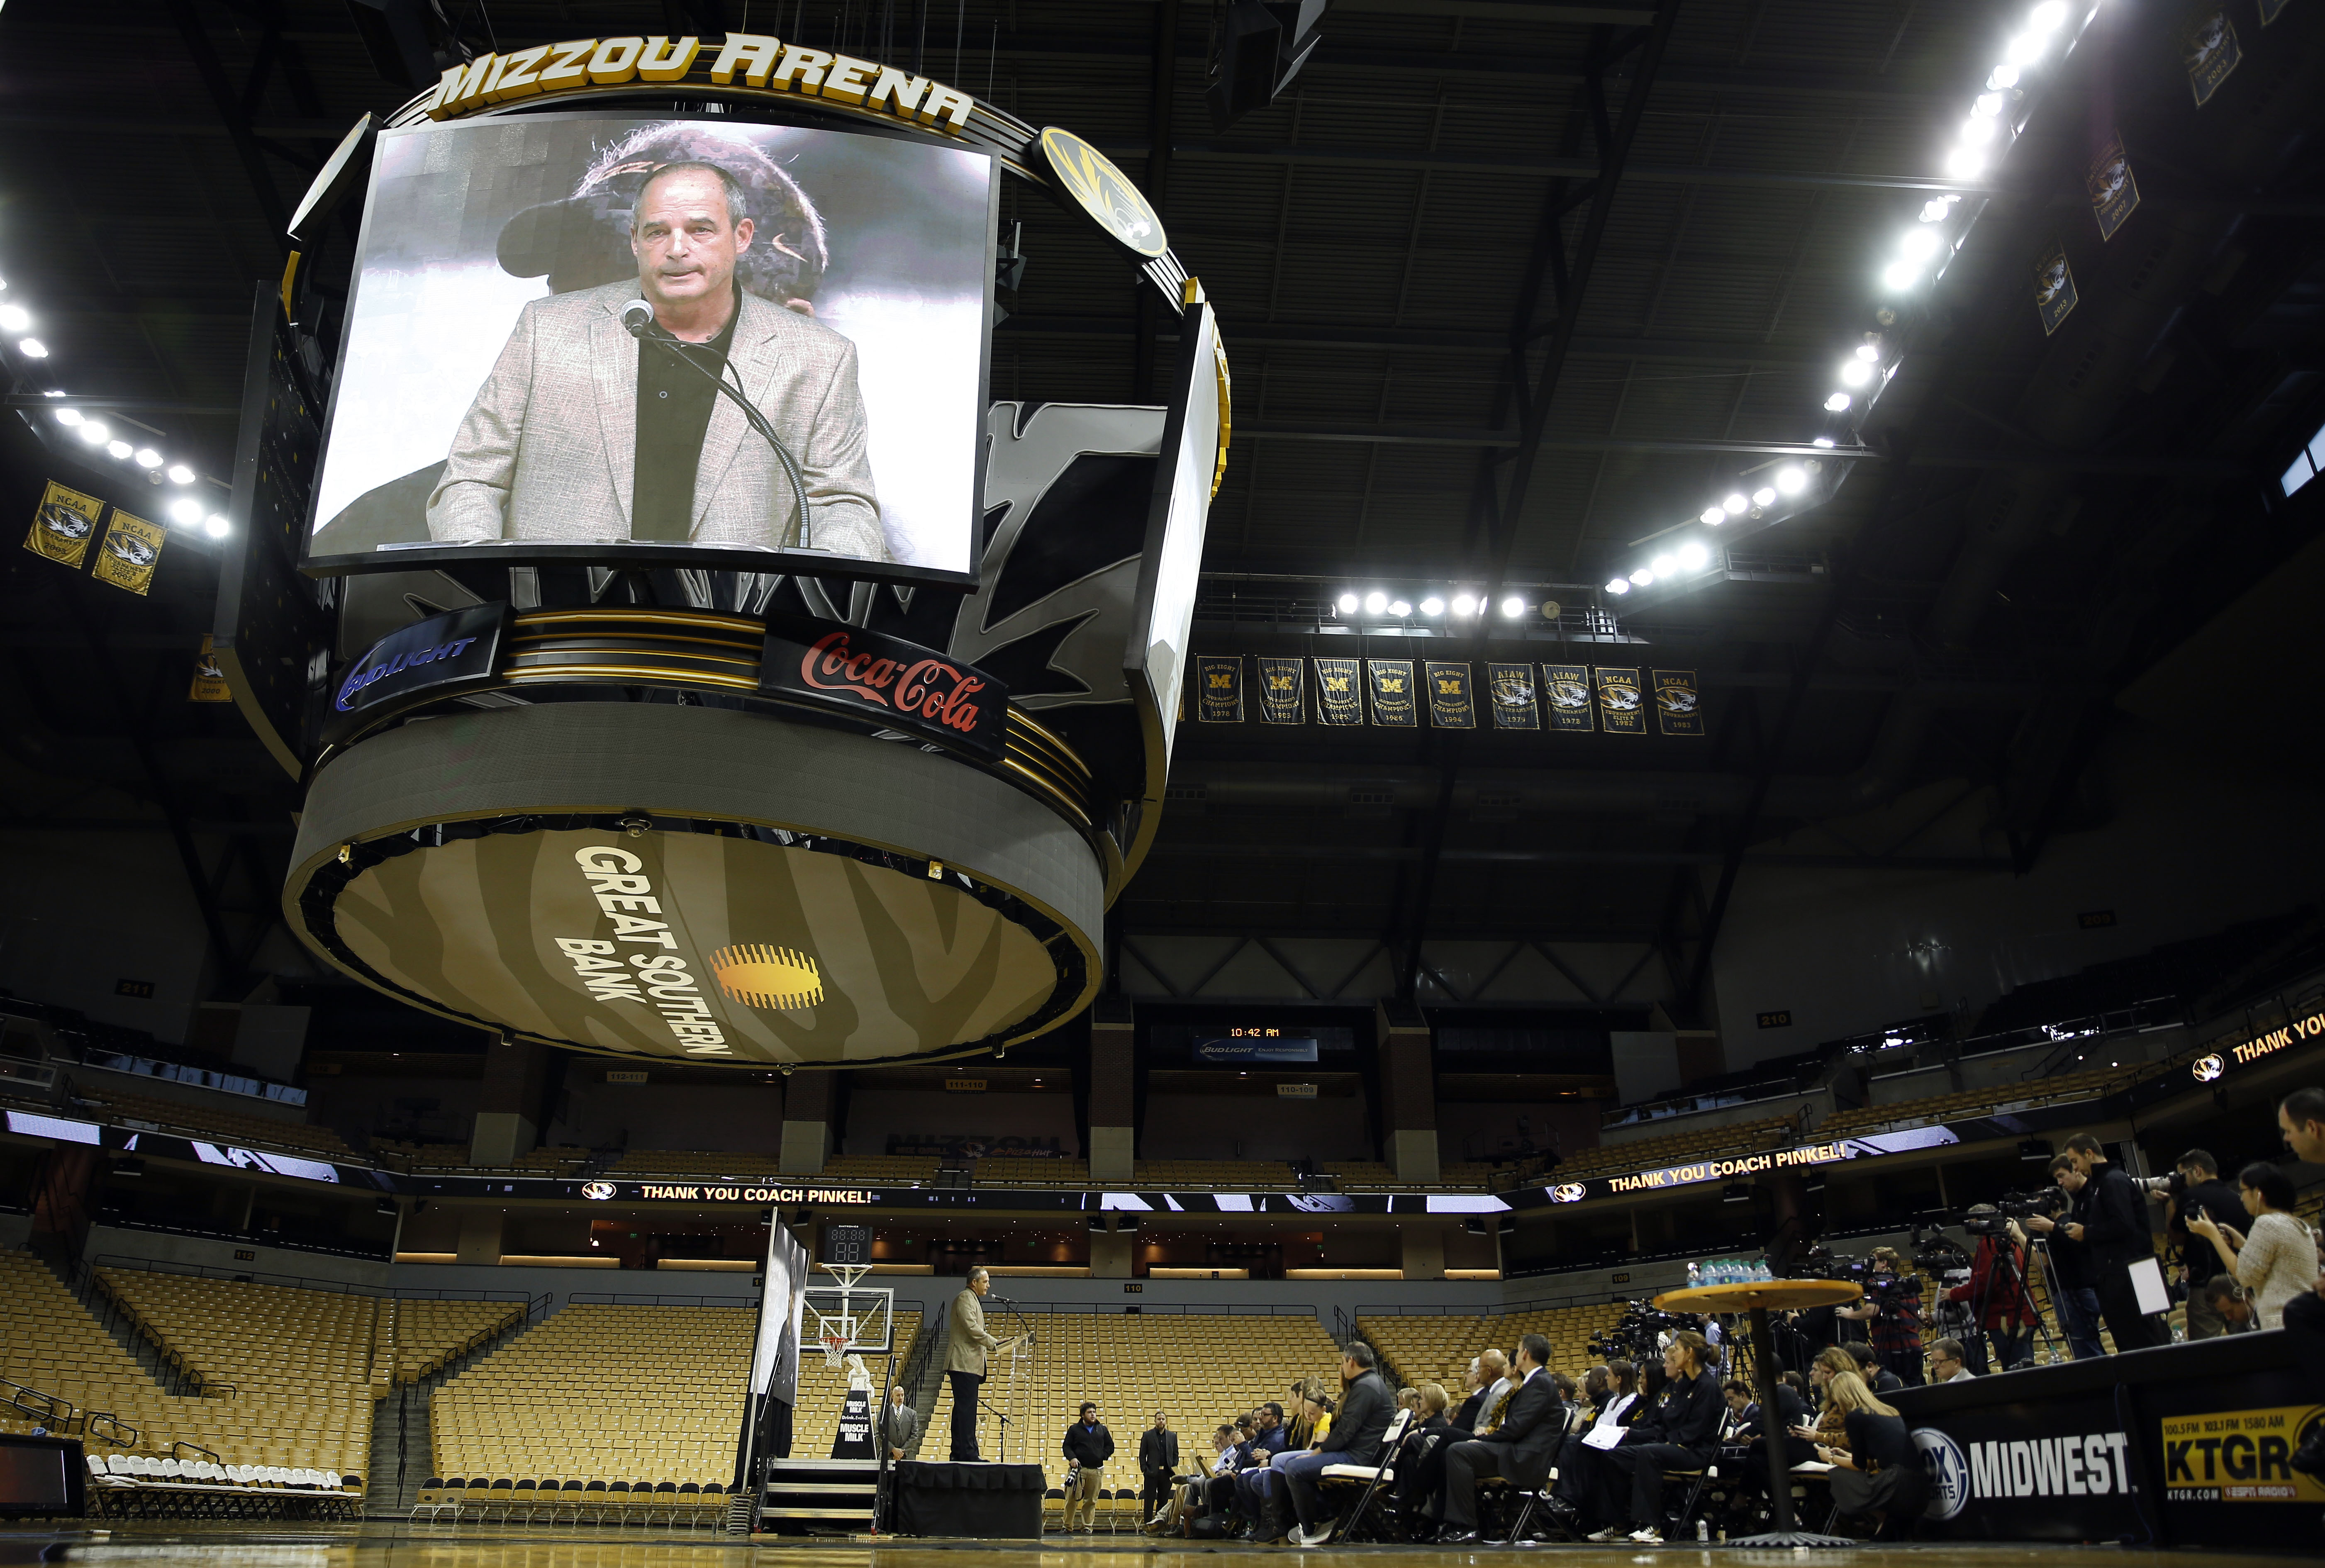 University of Missouri head football coach Gary Pinkel speaks at a podium while while also being shown on a screen above during a news conference Monday, Nov. 16, 2015, in Columbia, Mo. Pinkel has announced he will resign following the 2015 season after b